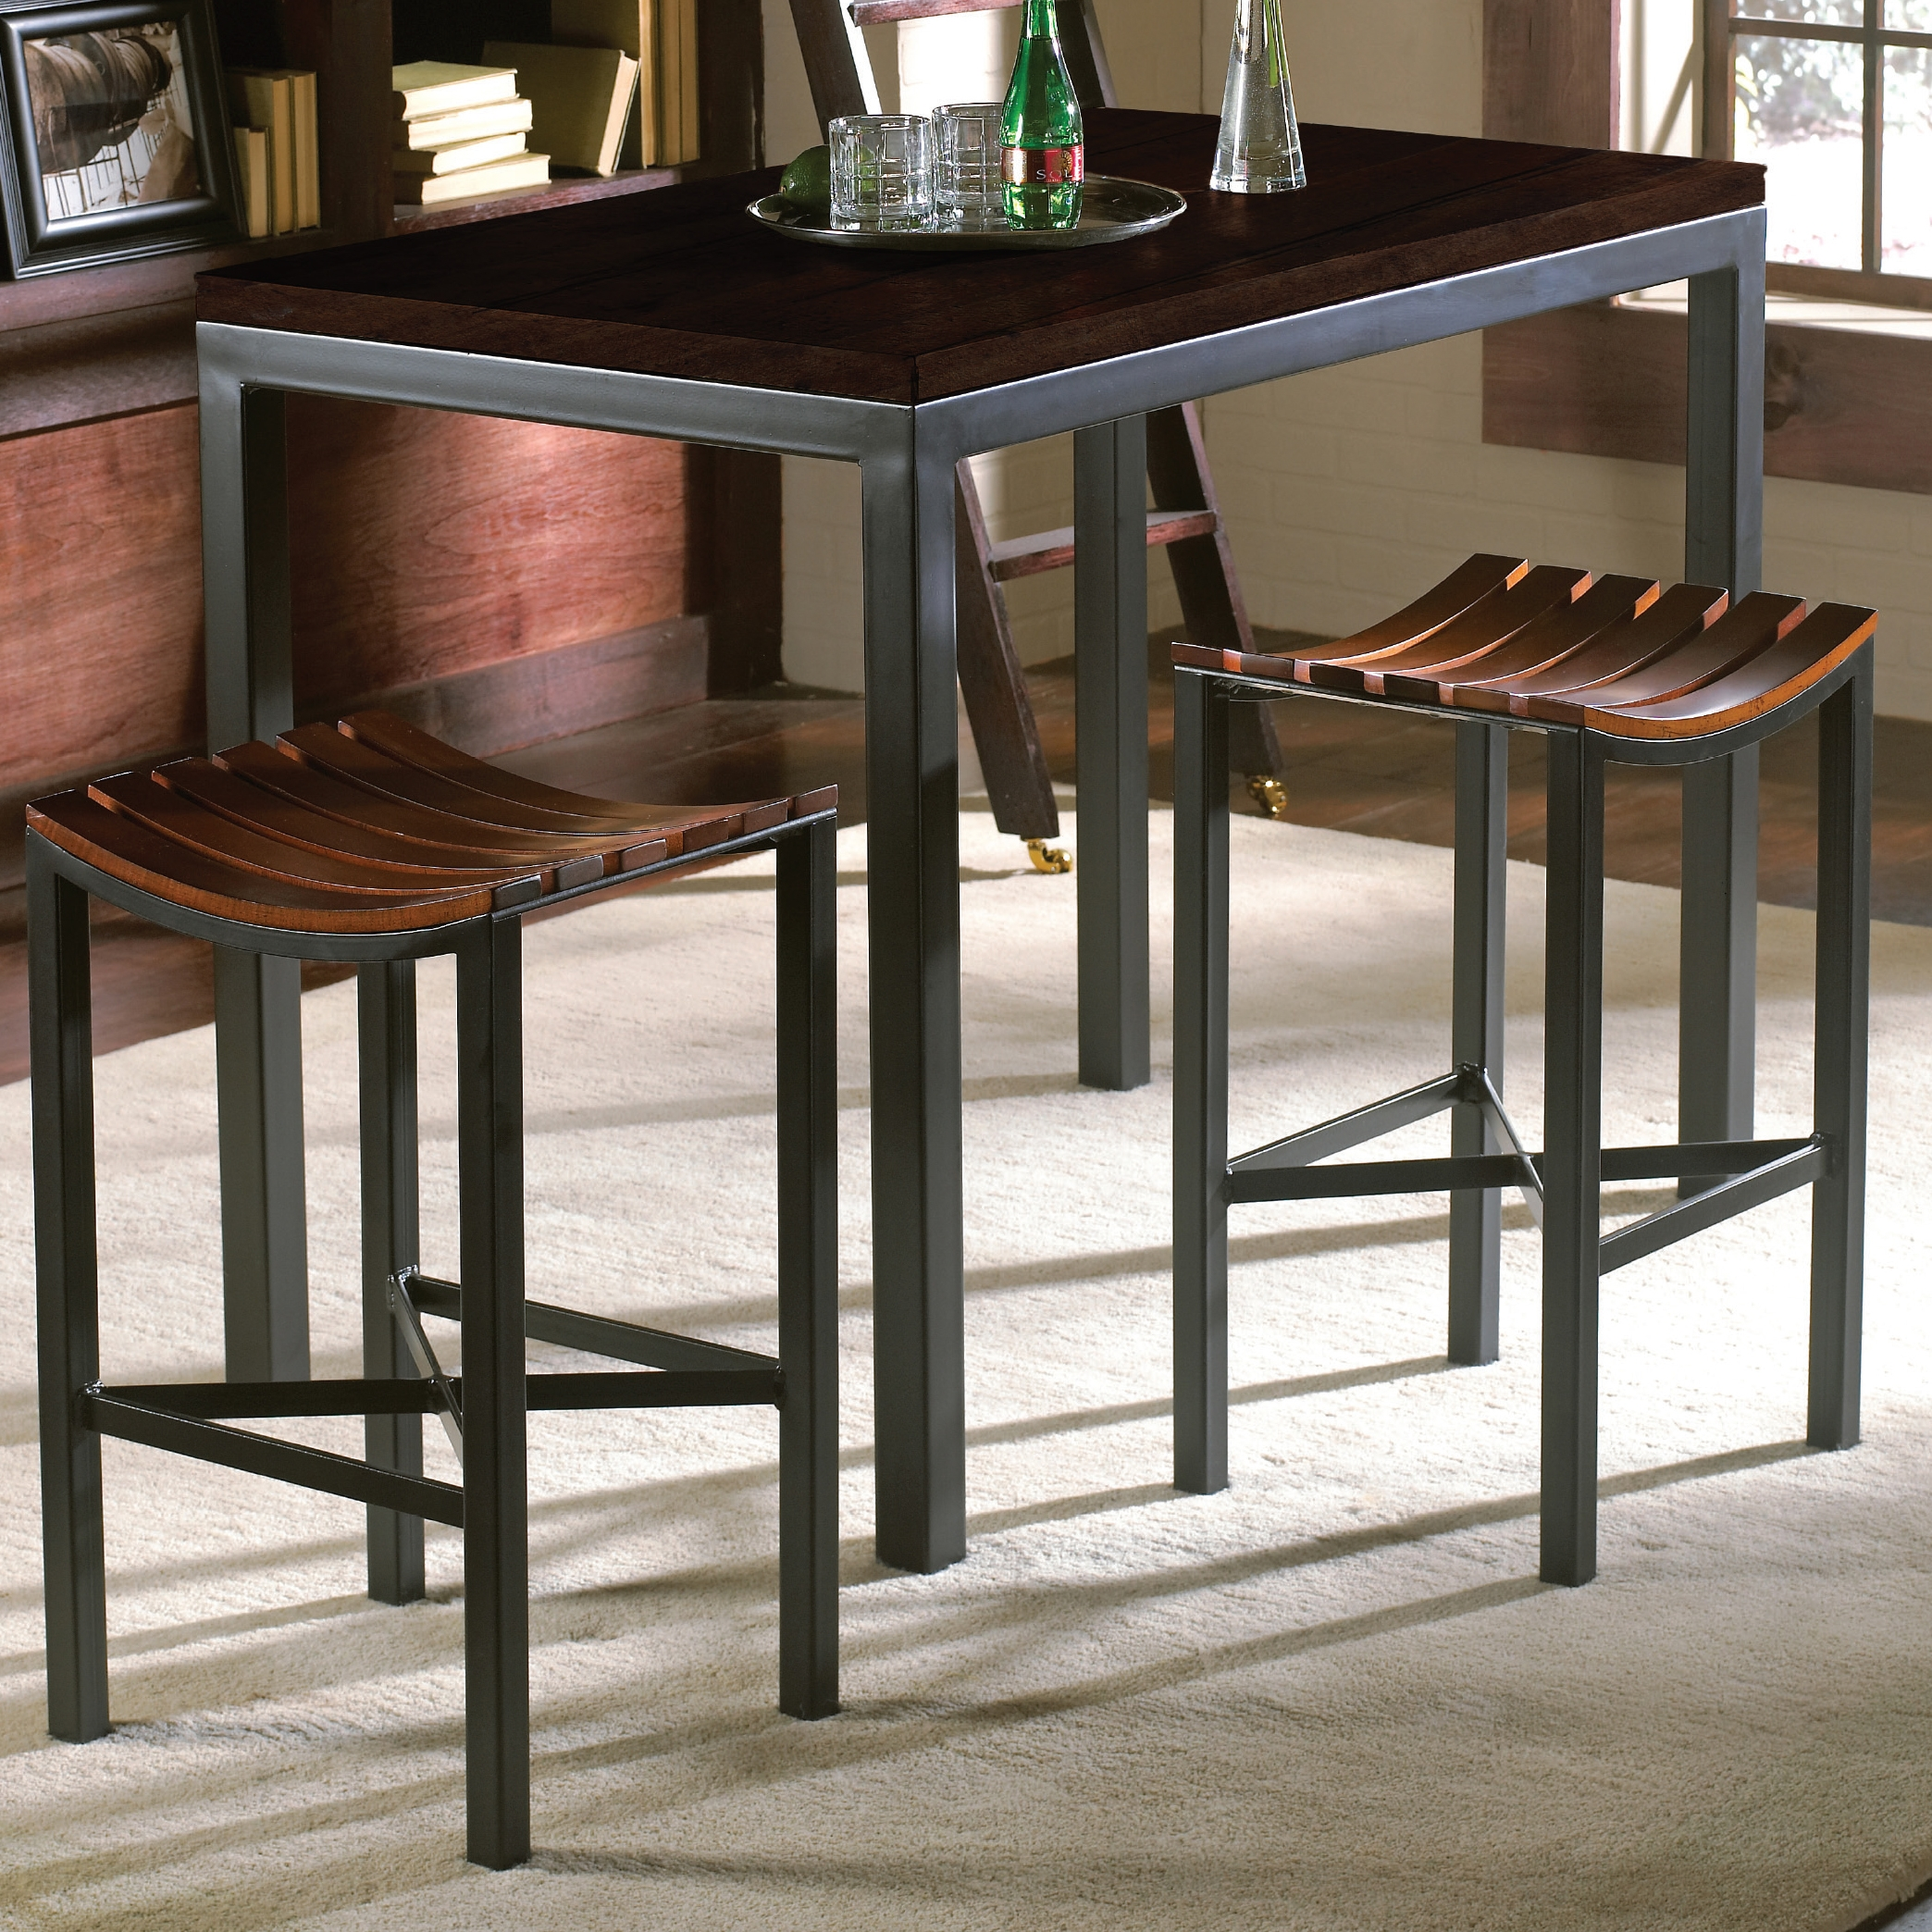 Best Of Contemporary Bar Height Table